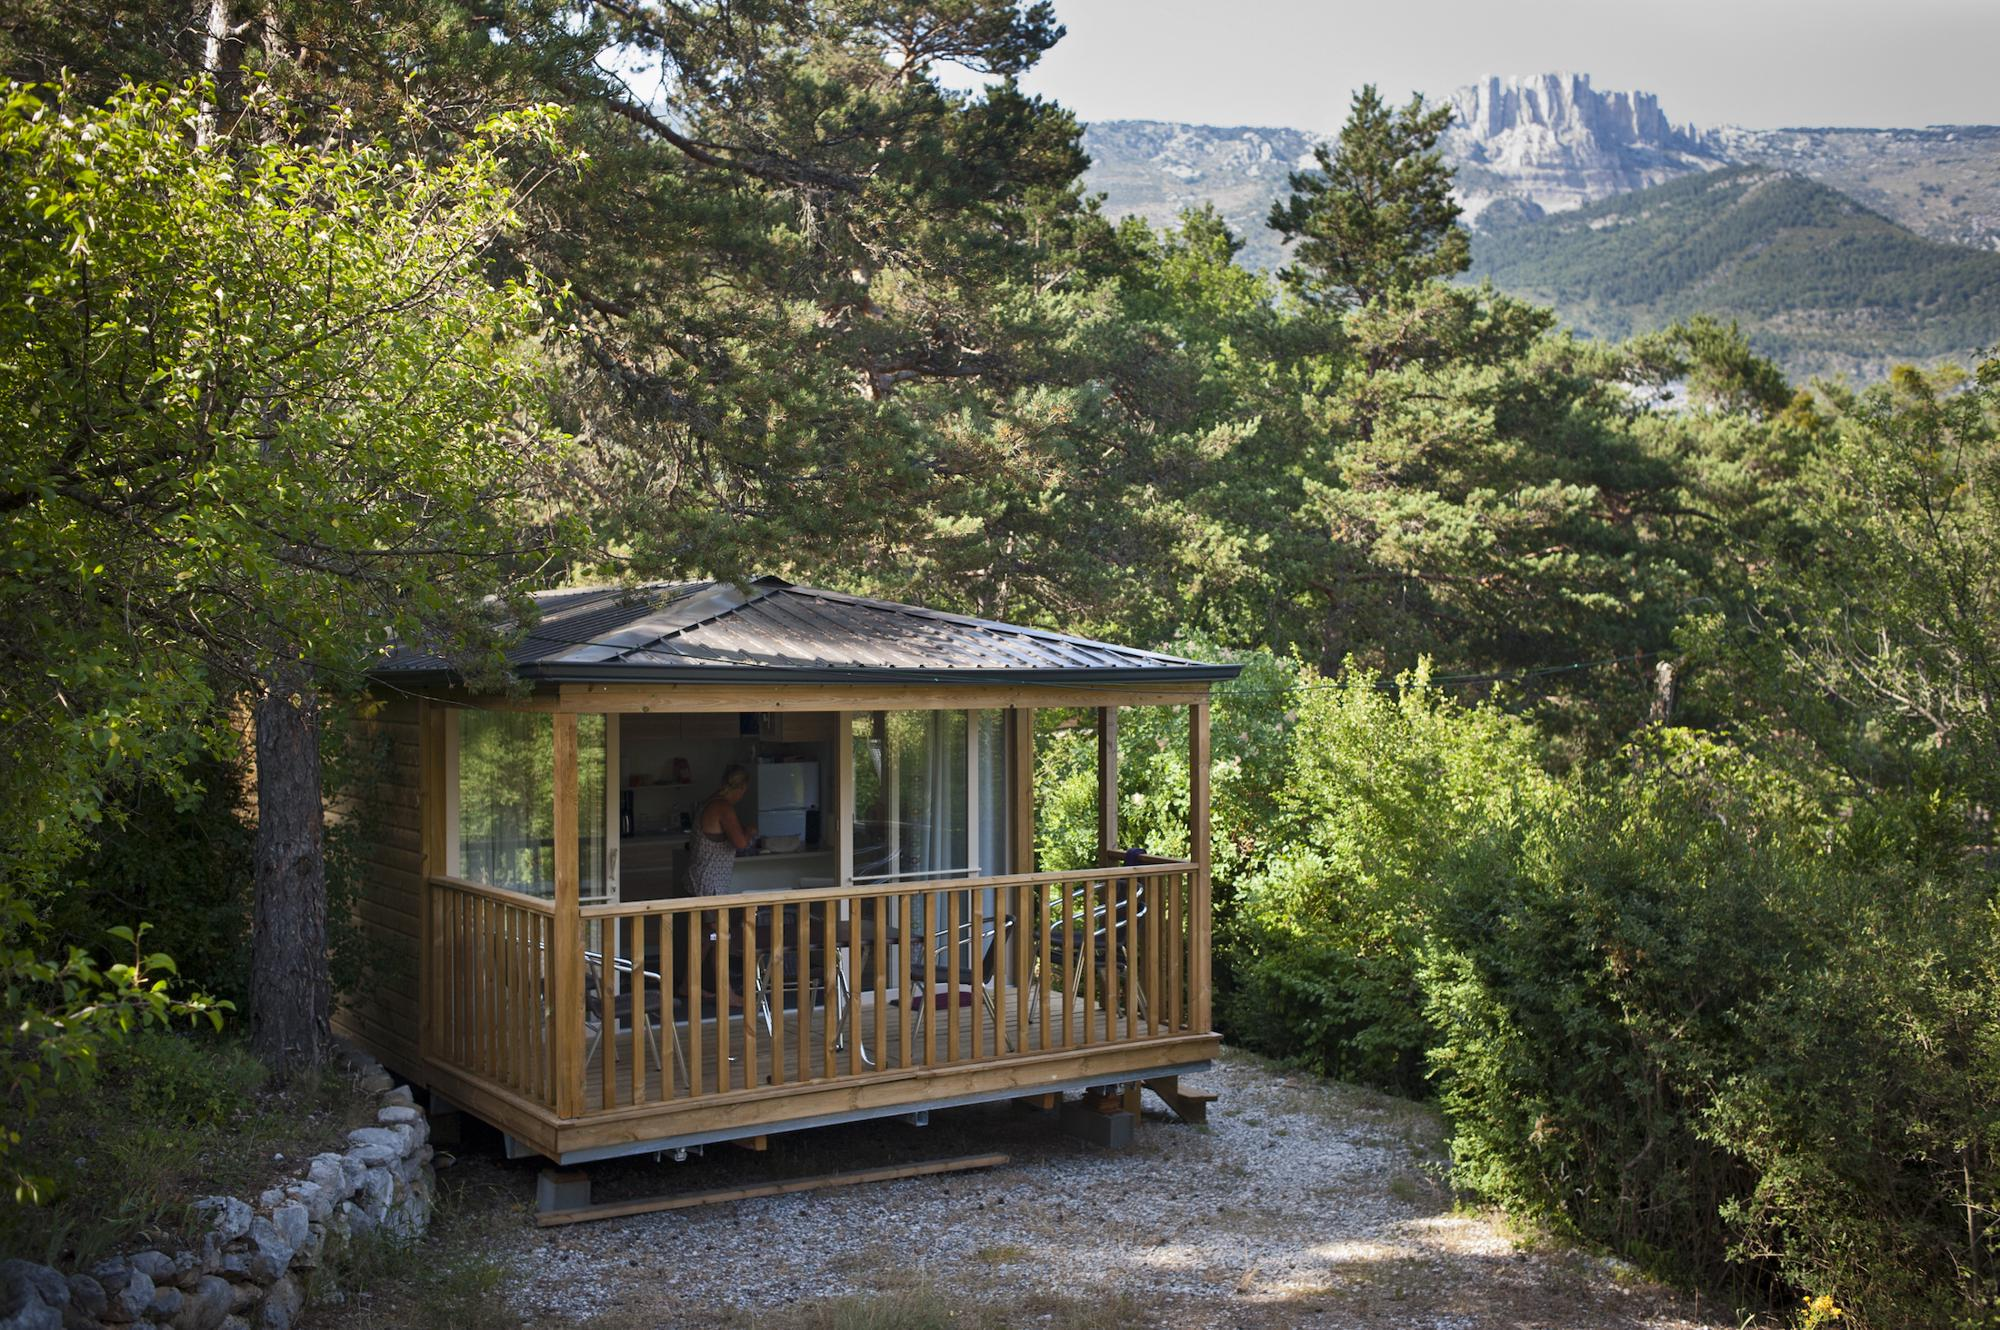 Glamping sites in Alpes-De-Haute-Provence, France